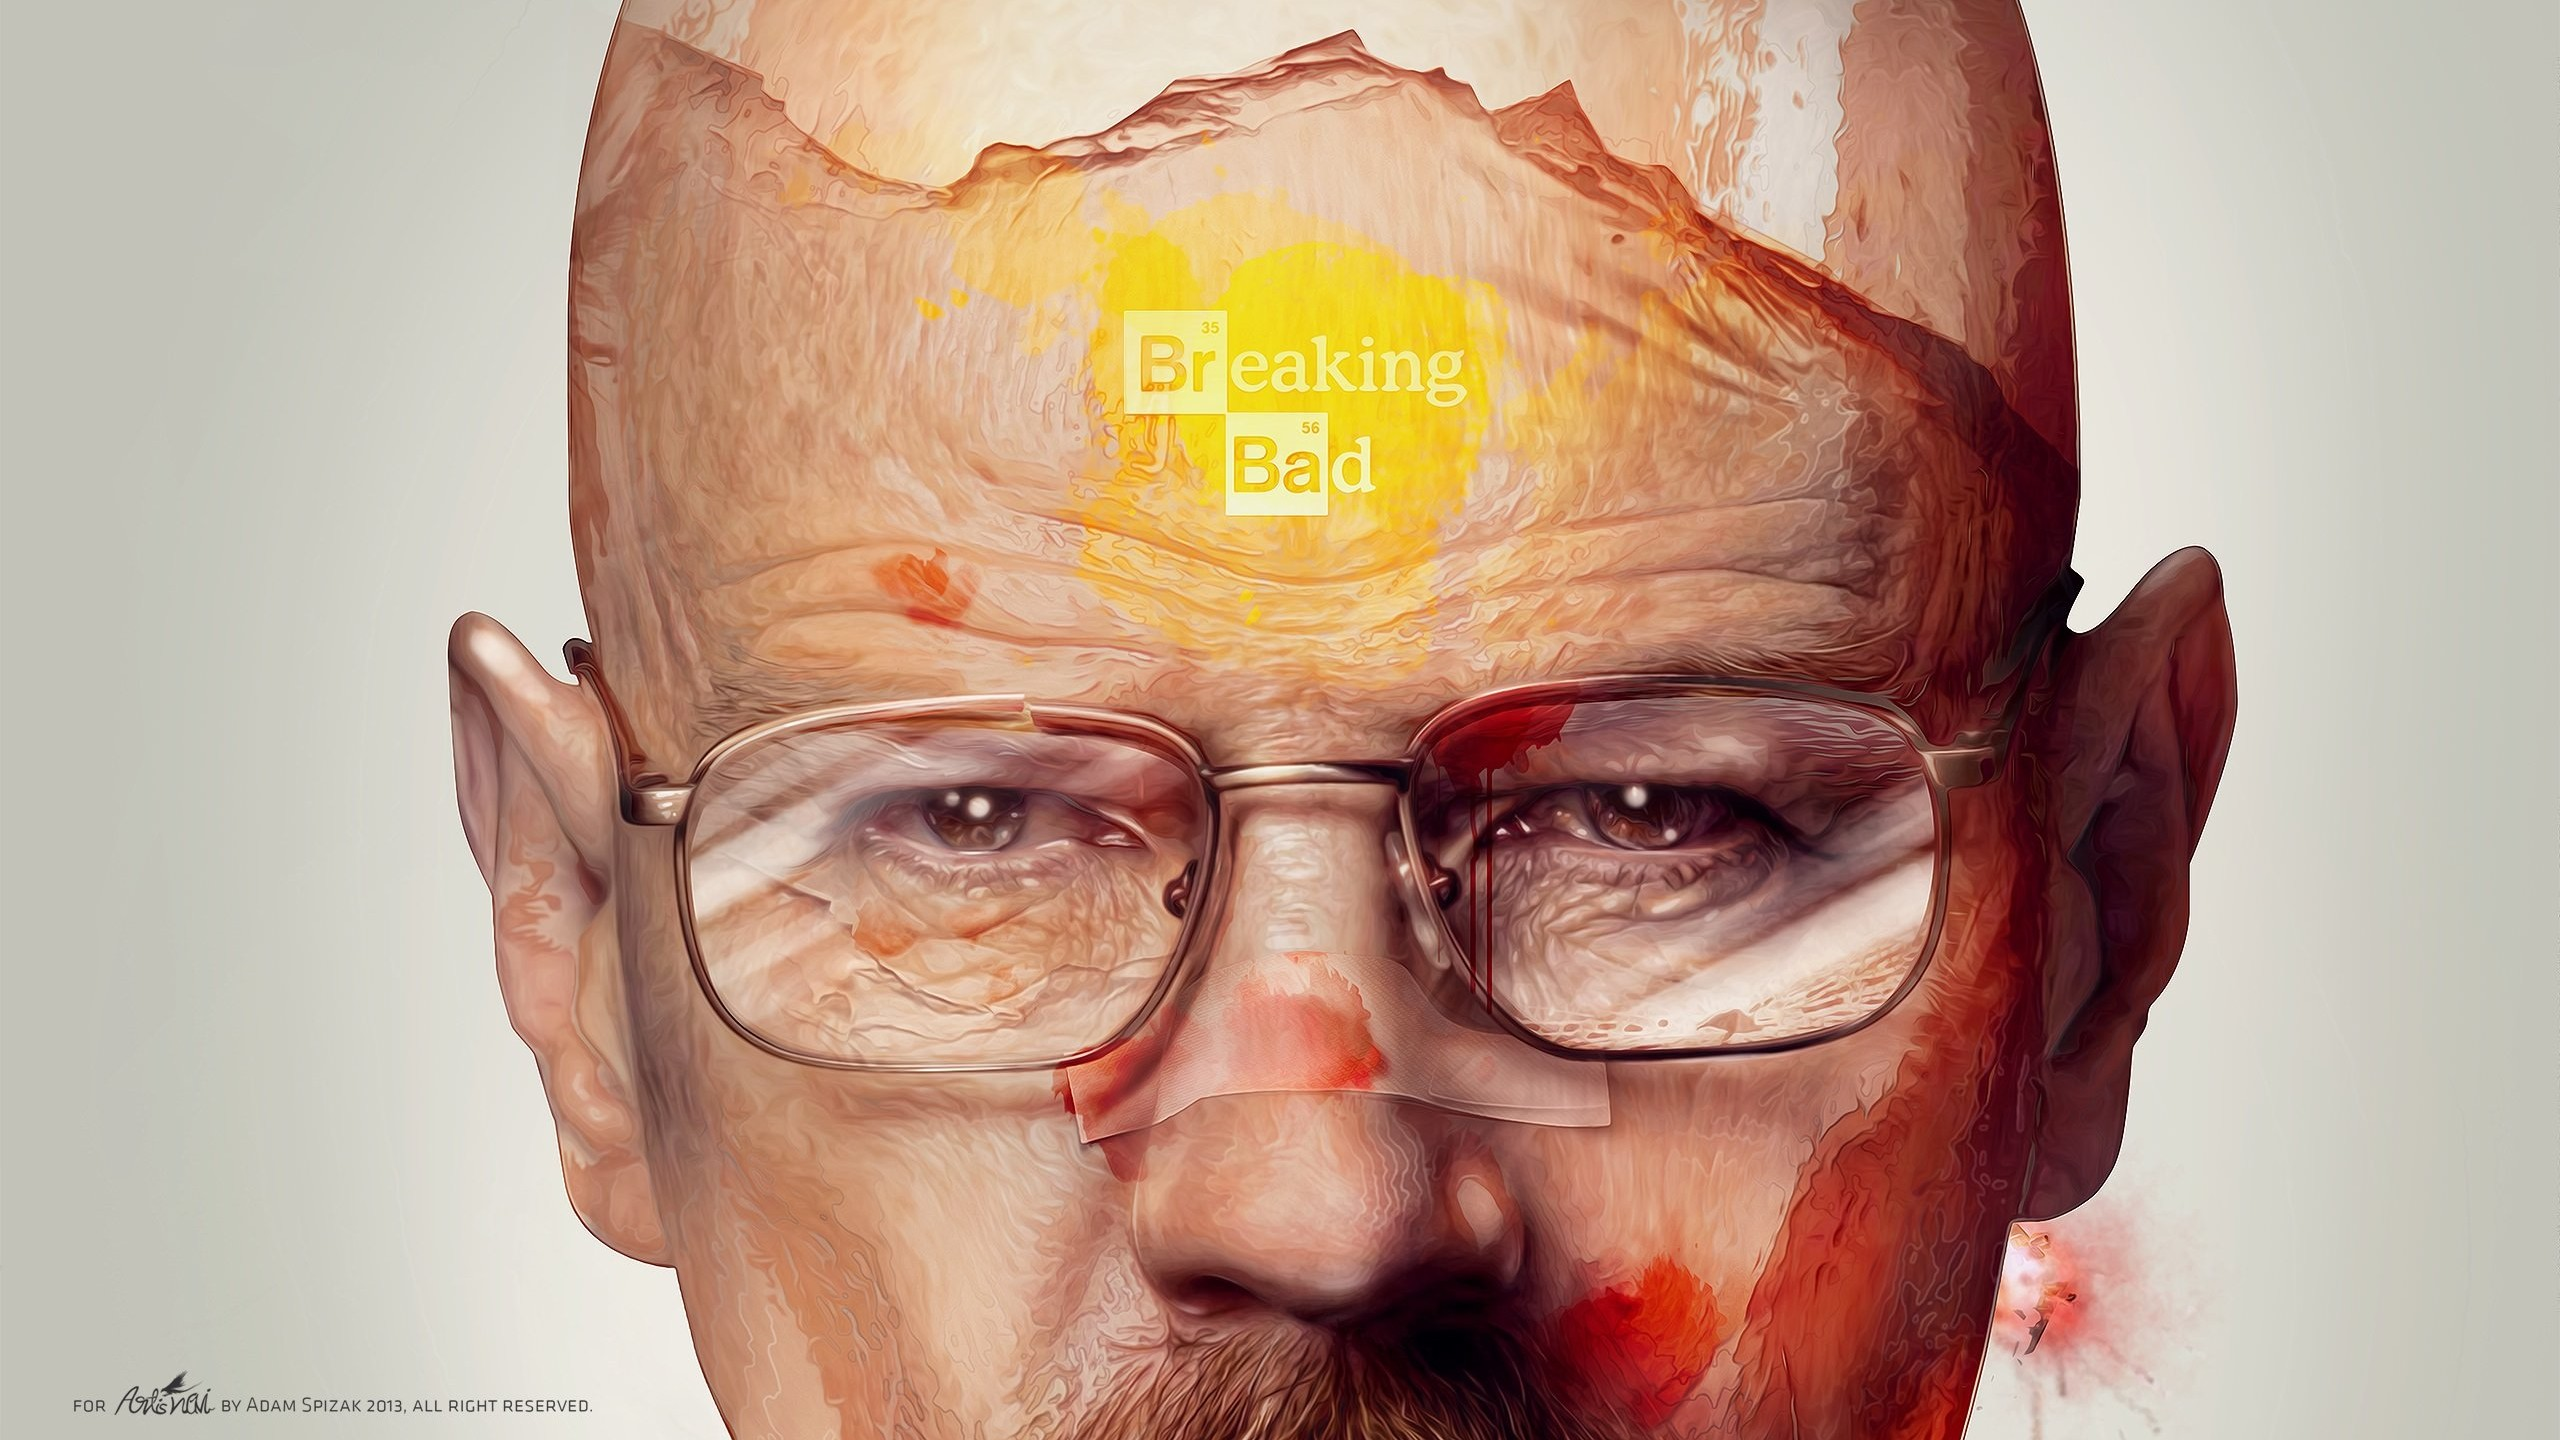 Breaking Bad - Walter White Wallpaper for Desktop 2560x1440